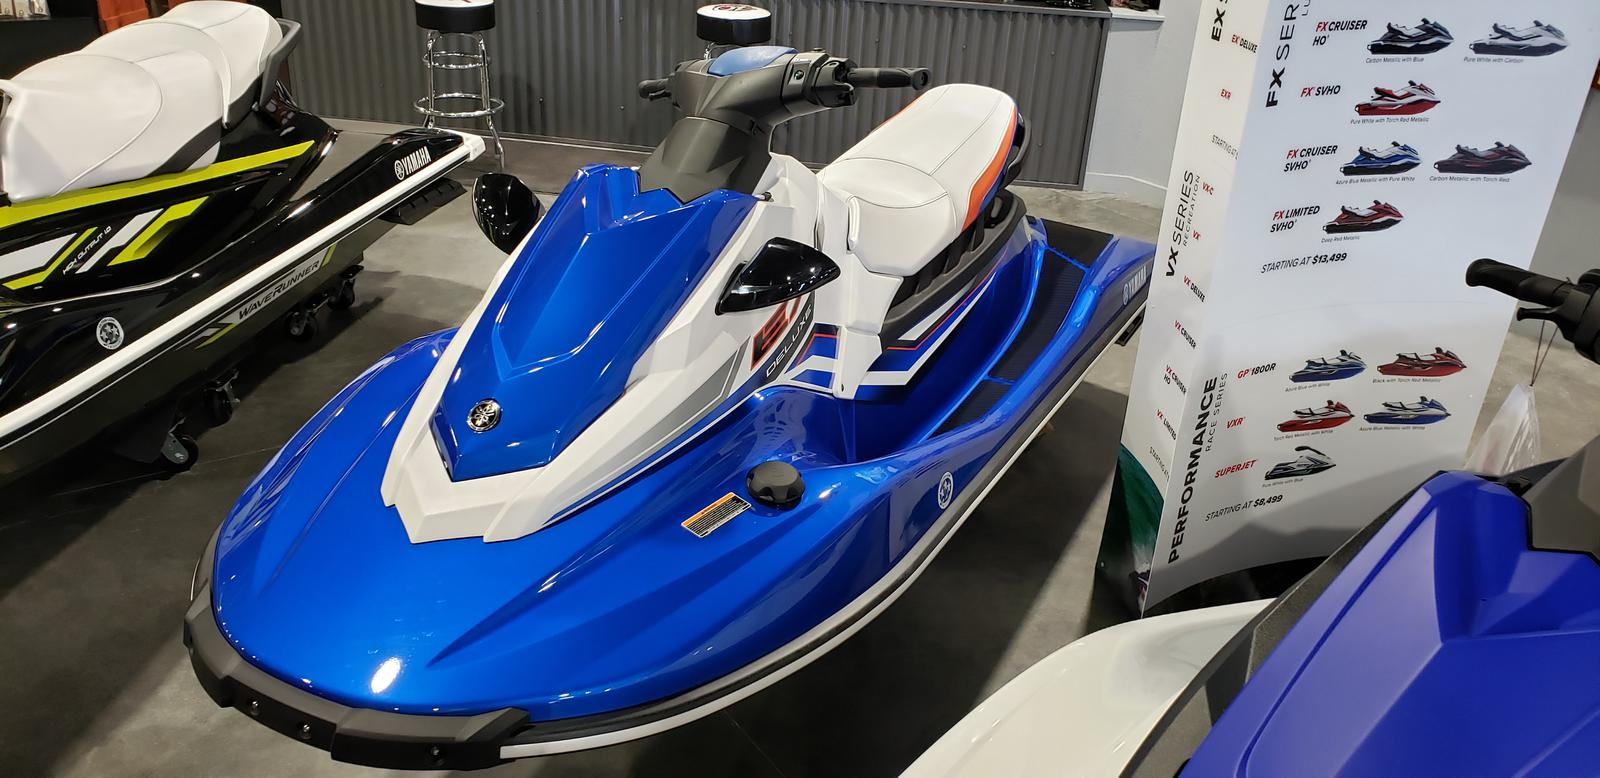 Inventory from Yamaha and Regency S & S Sports